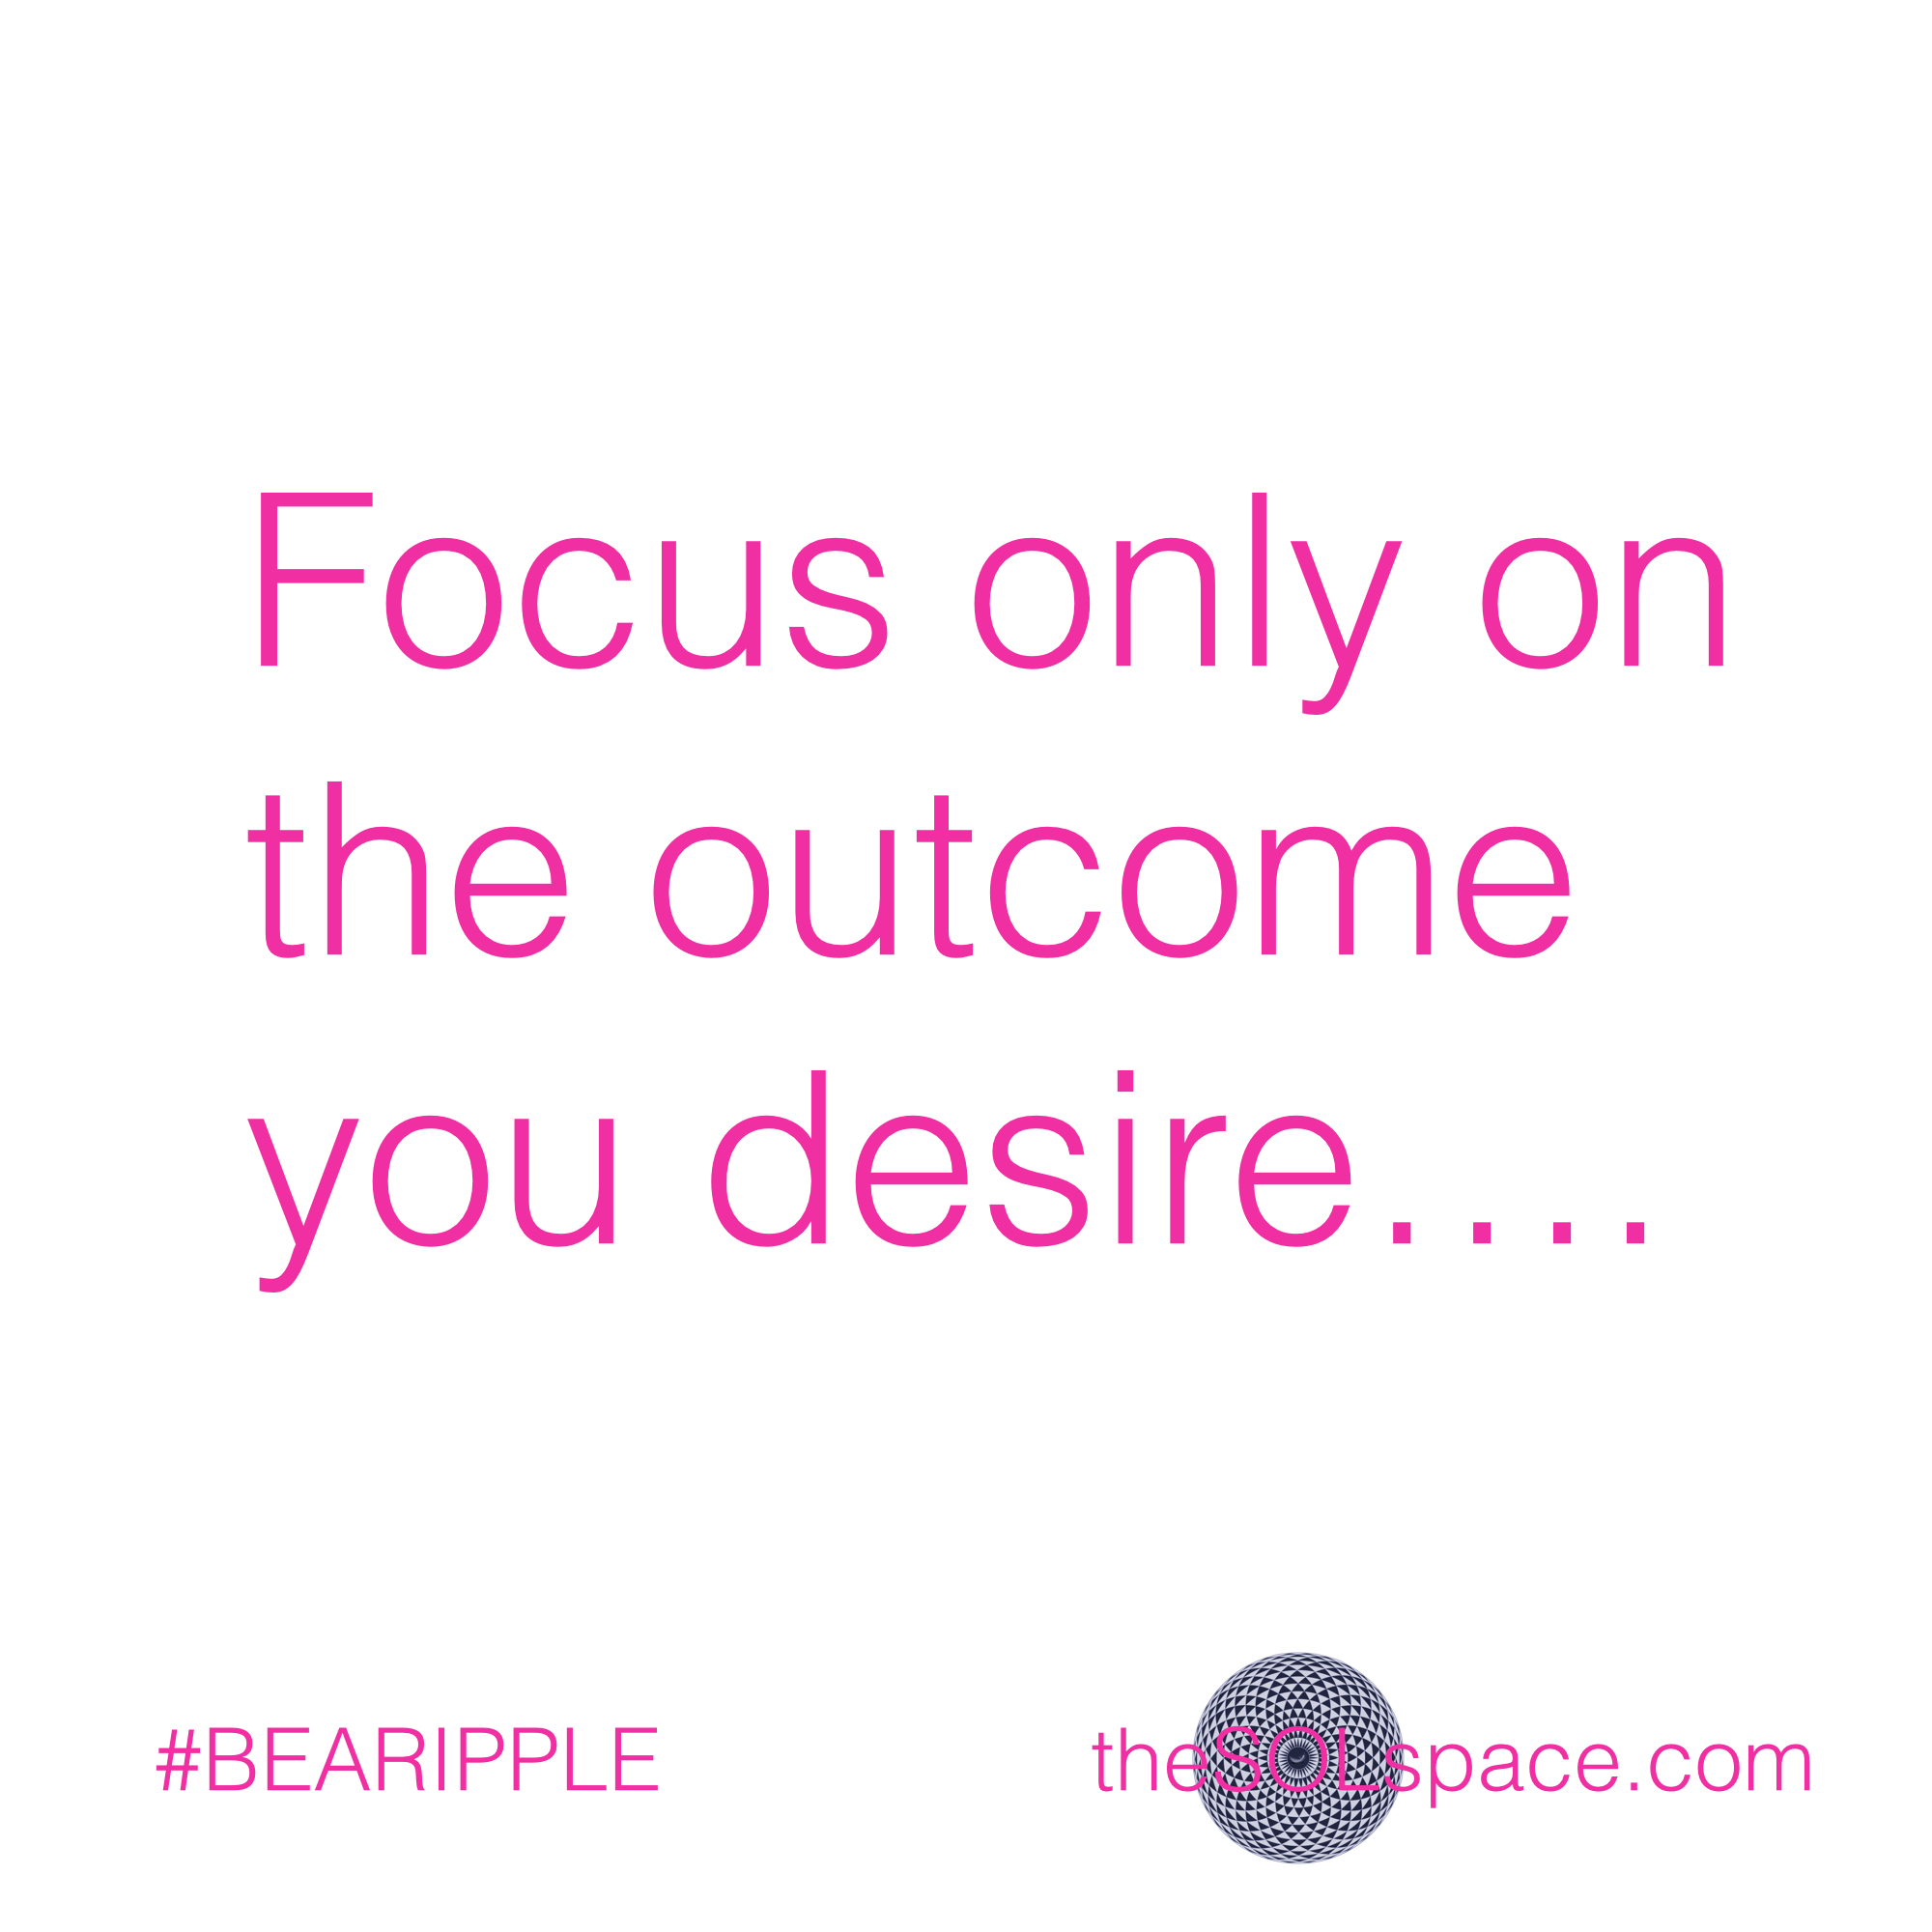 #BeARipple..Focus only on the outcome you desire @theSOLspace